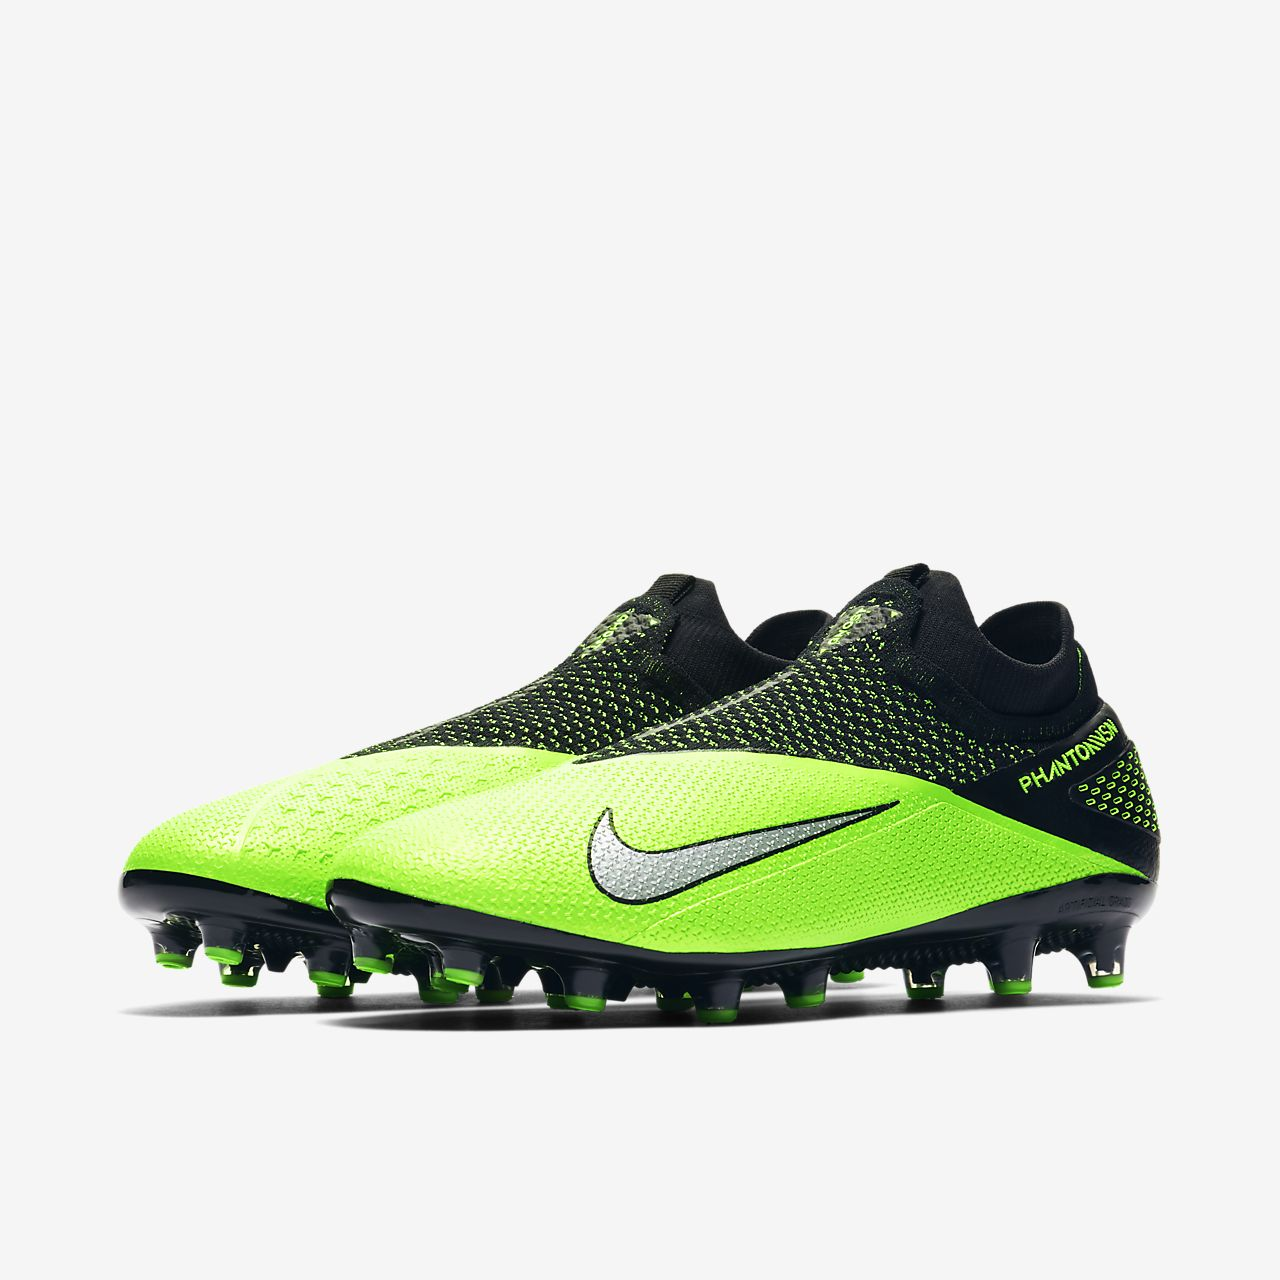 Details about Nike Phantom Vision Gato X Indoor Football Trainers Mens Soccer Futsal Shoes